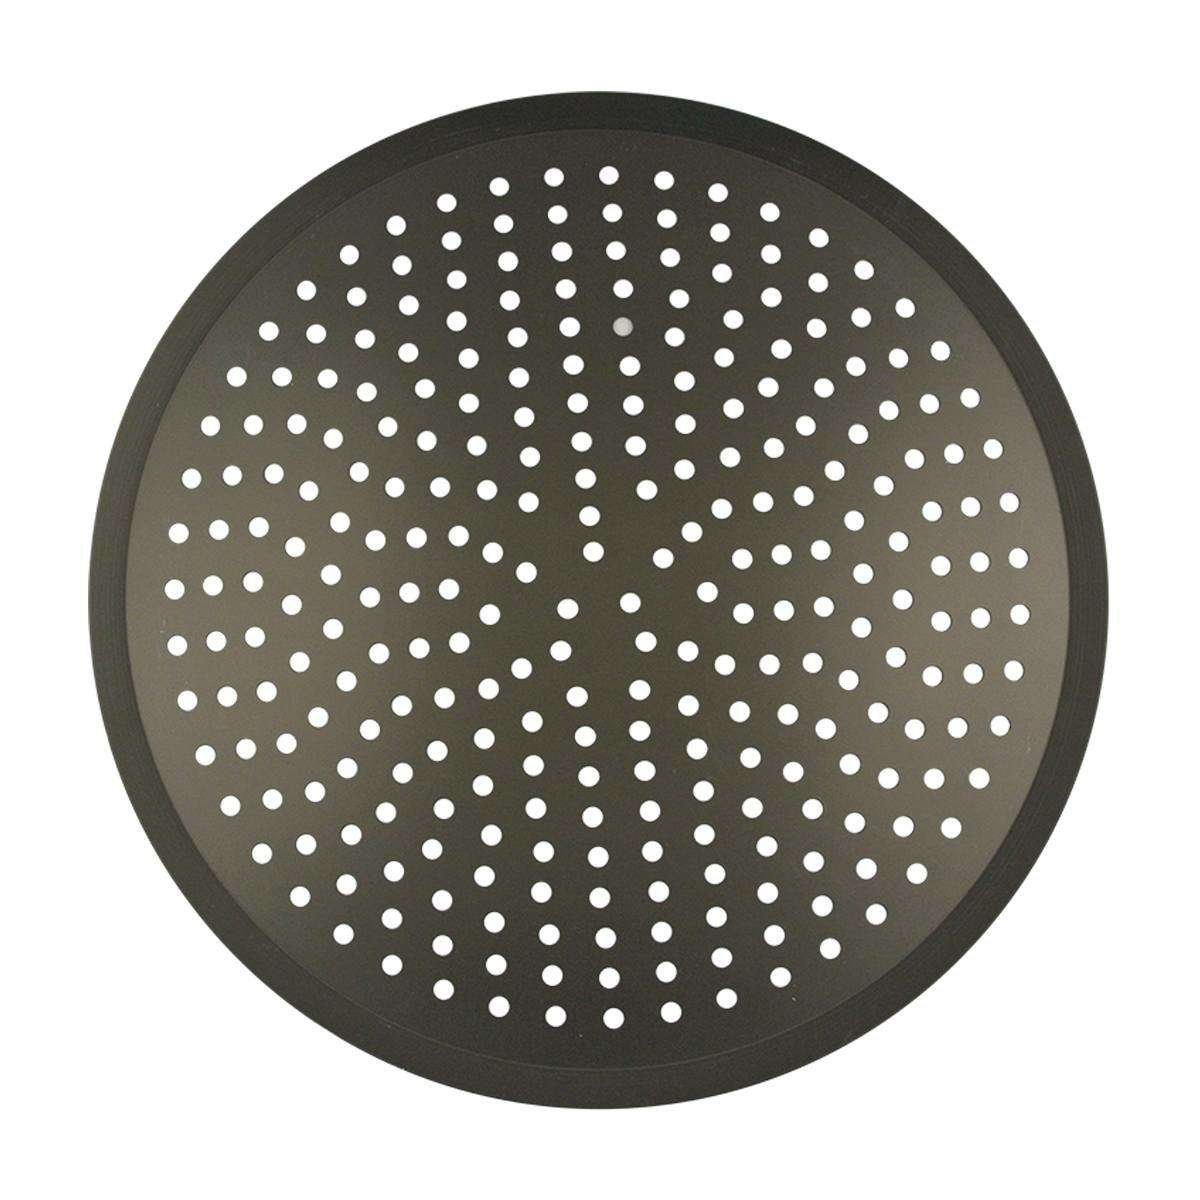 heavy duty perforated pizza pan